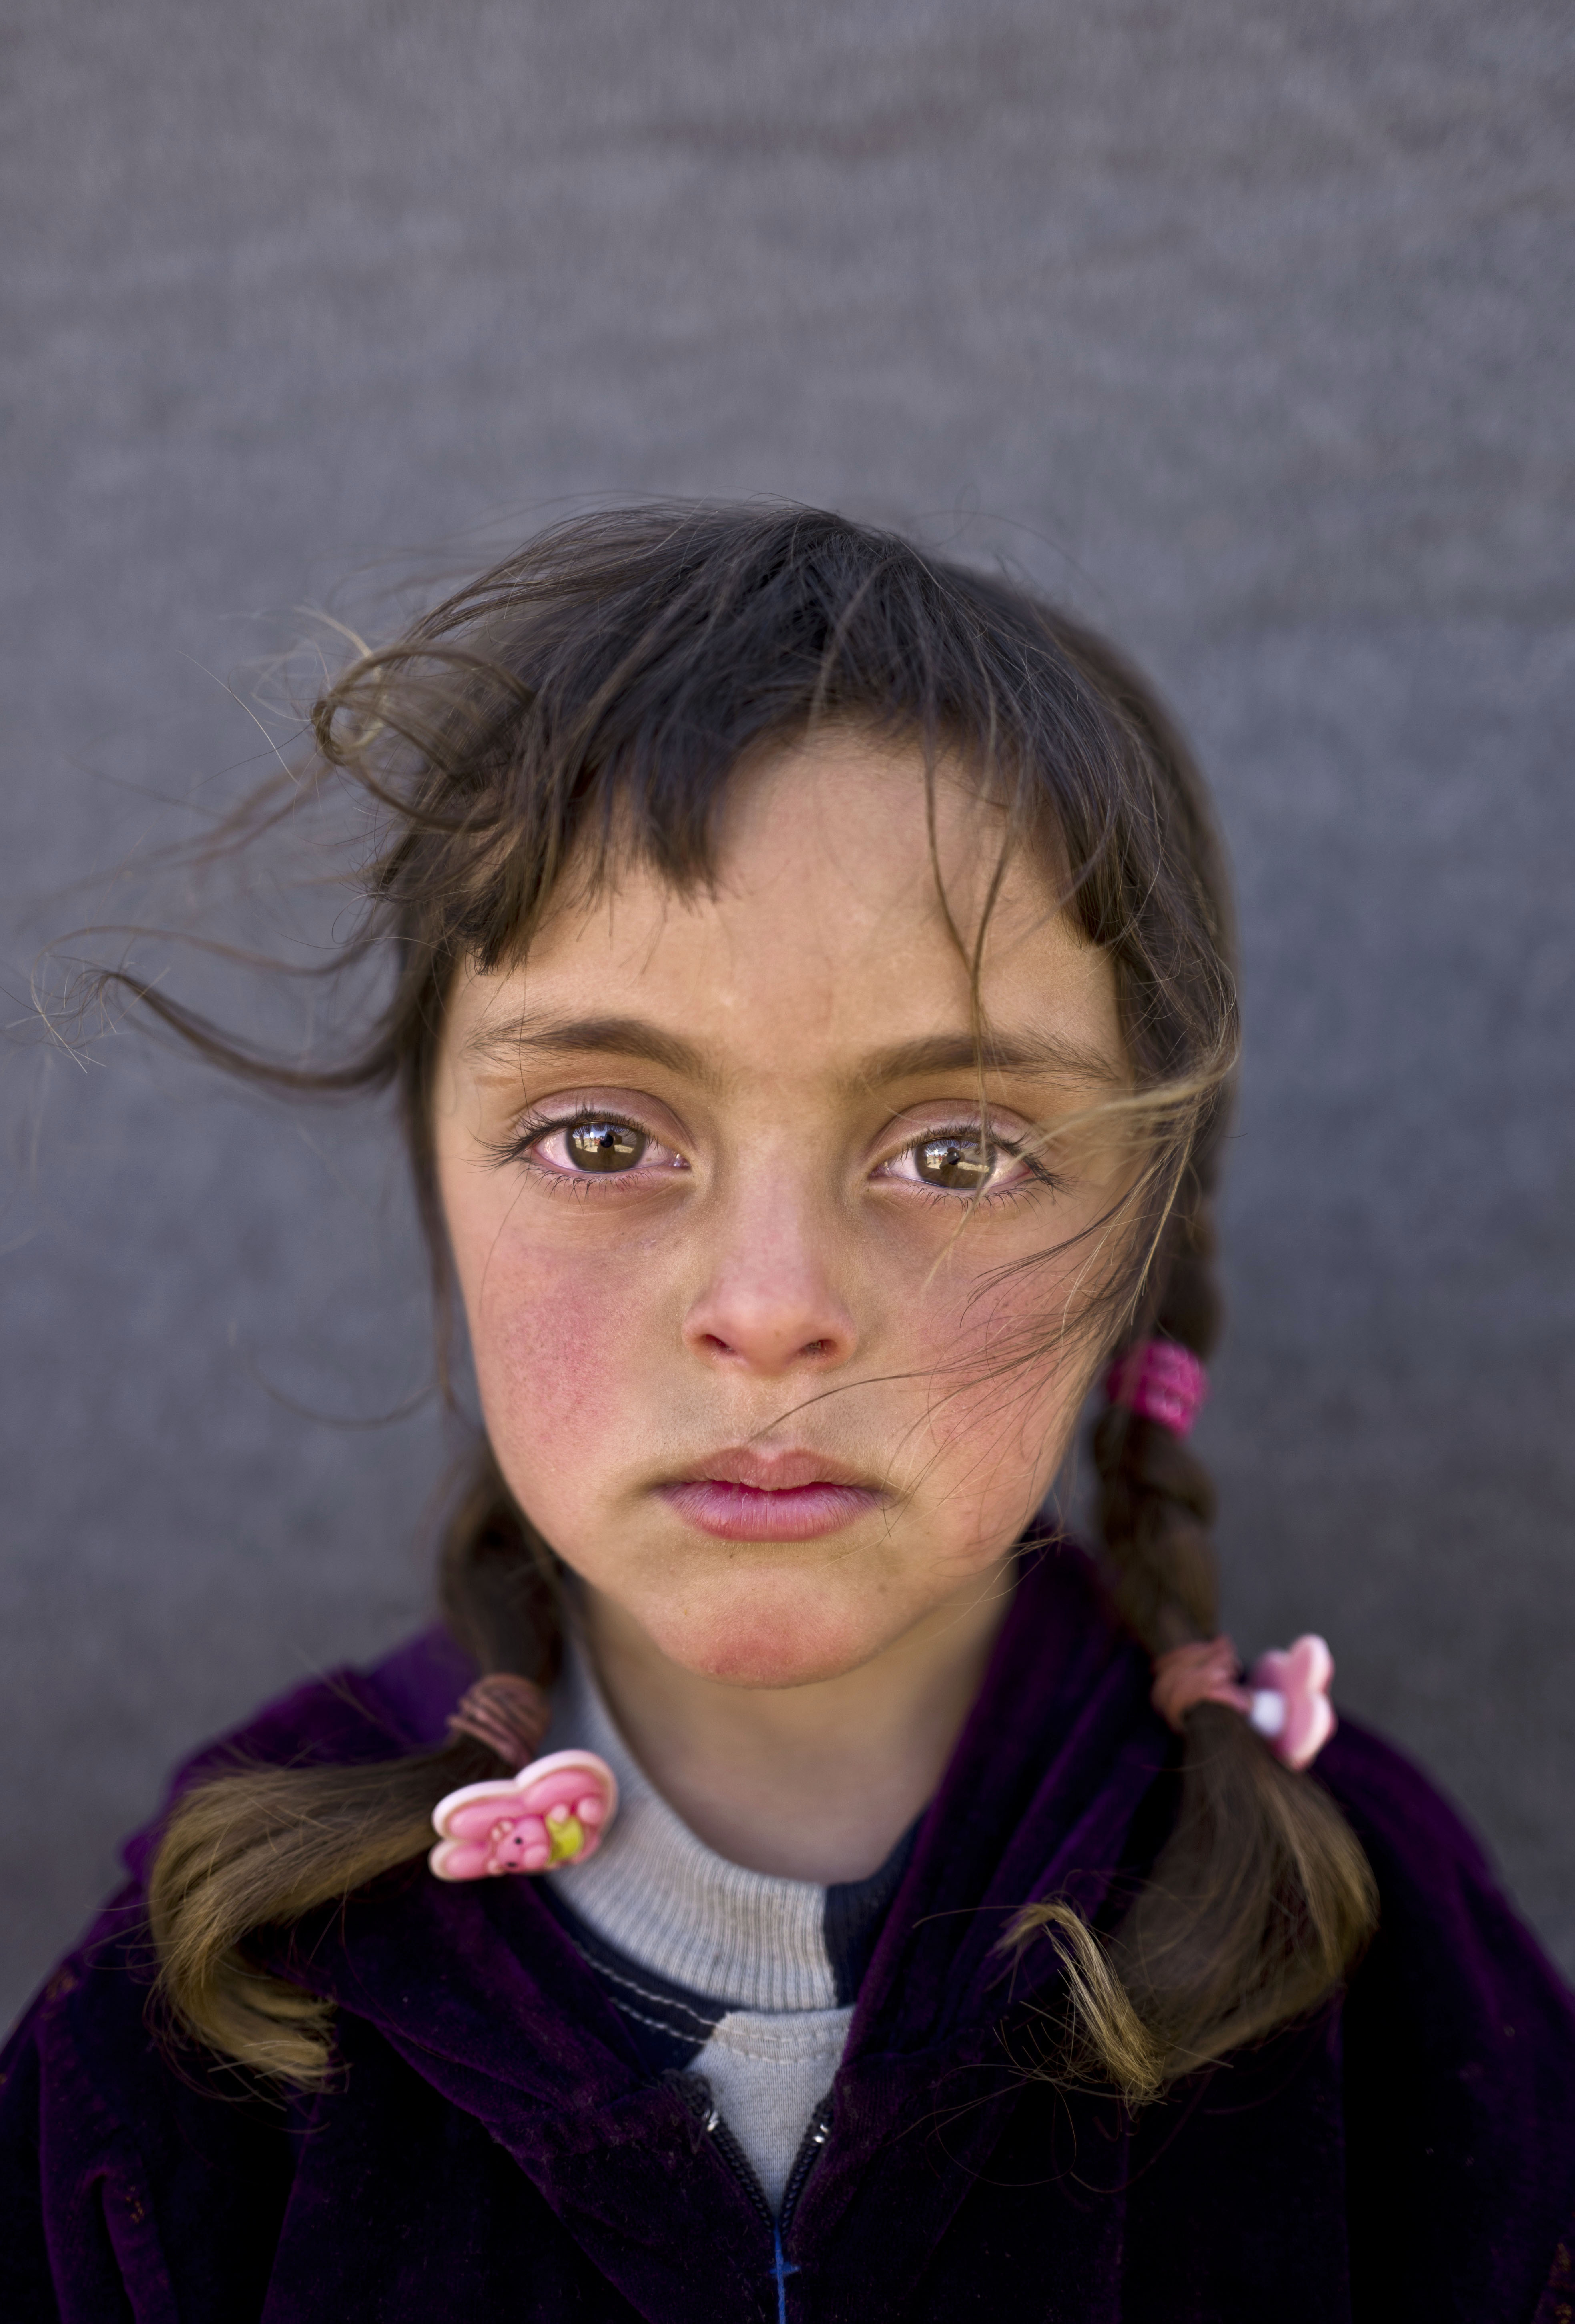 <strong>Zahra Mahmoud</strong>, 5, from Deir el-Zour.